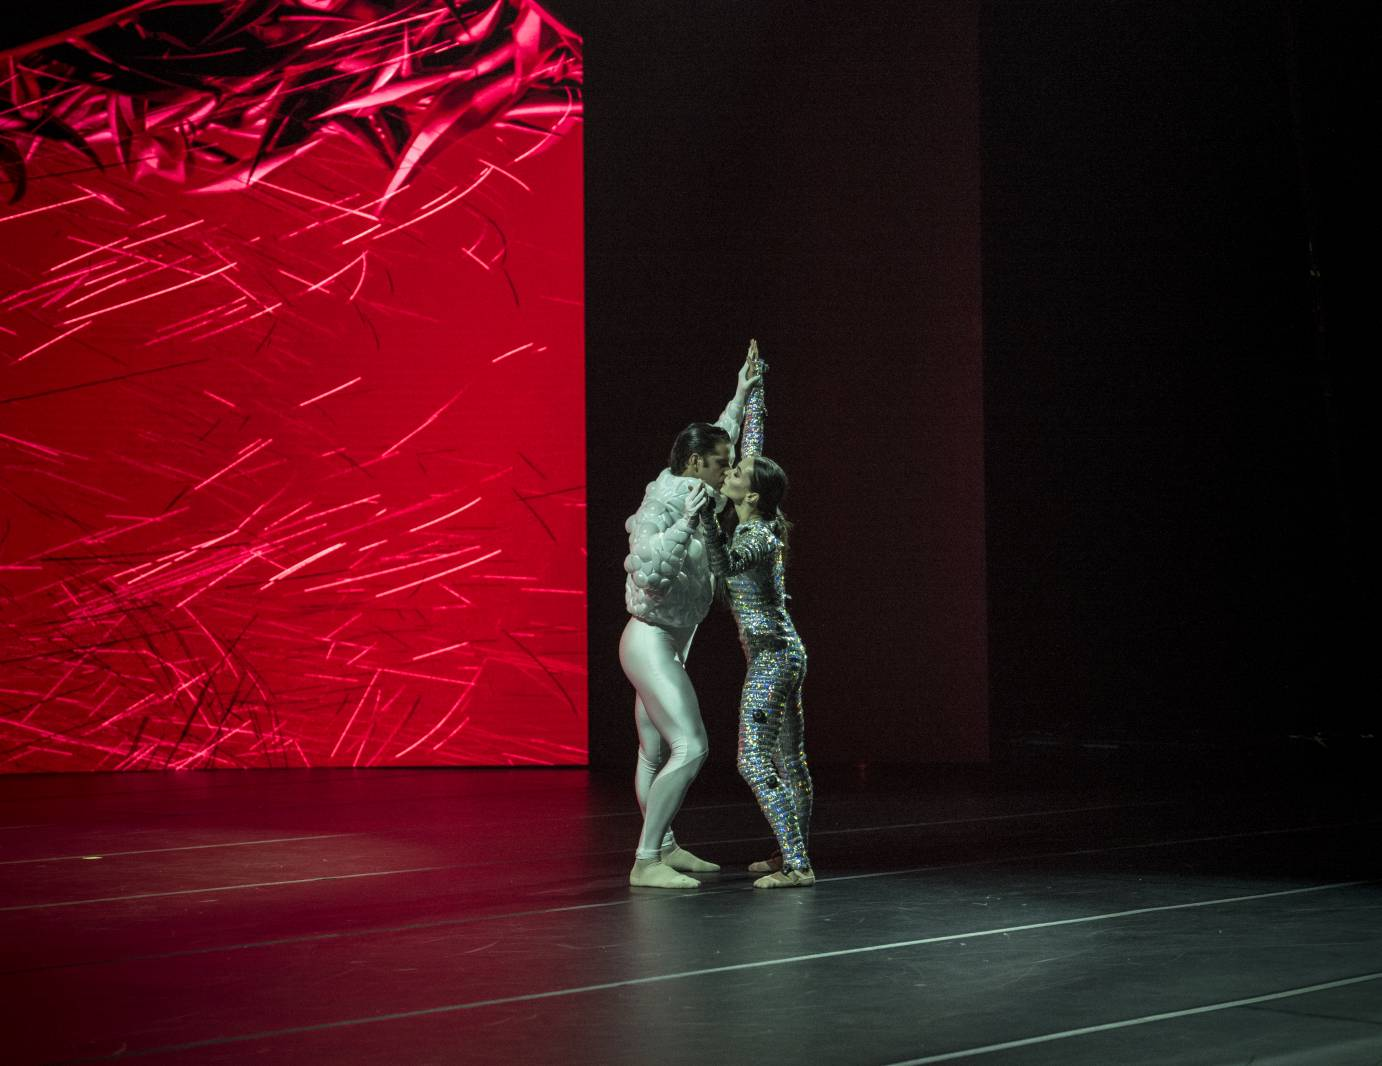 Two dancers against a red projection